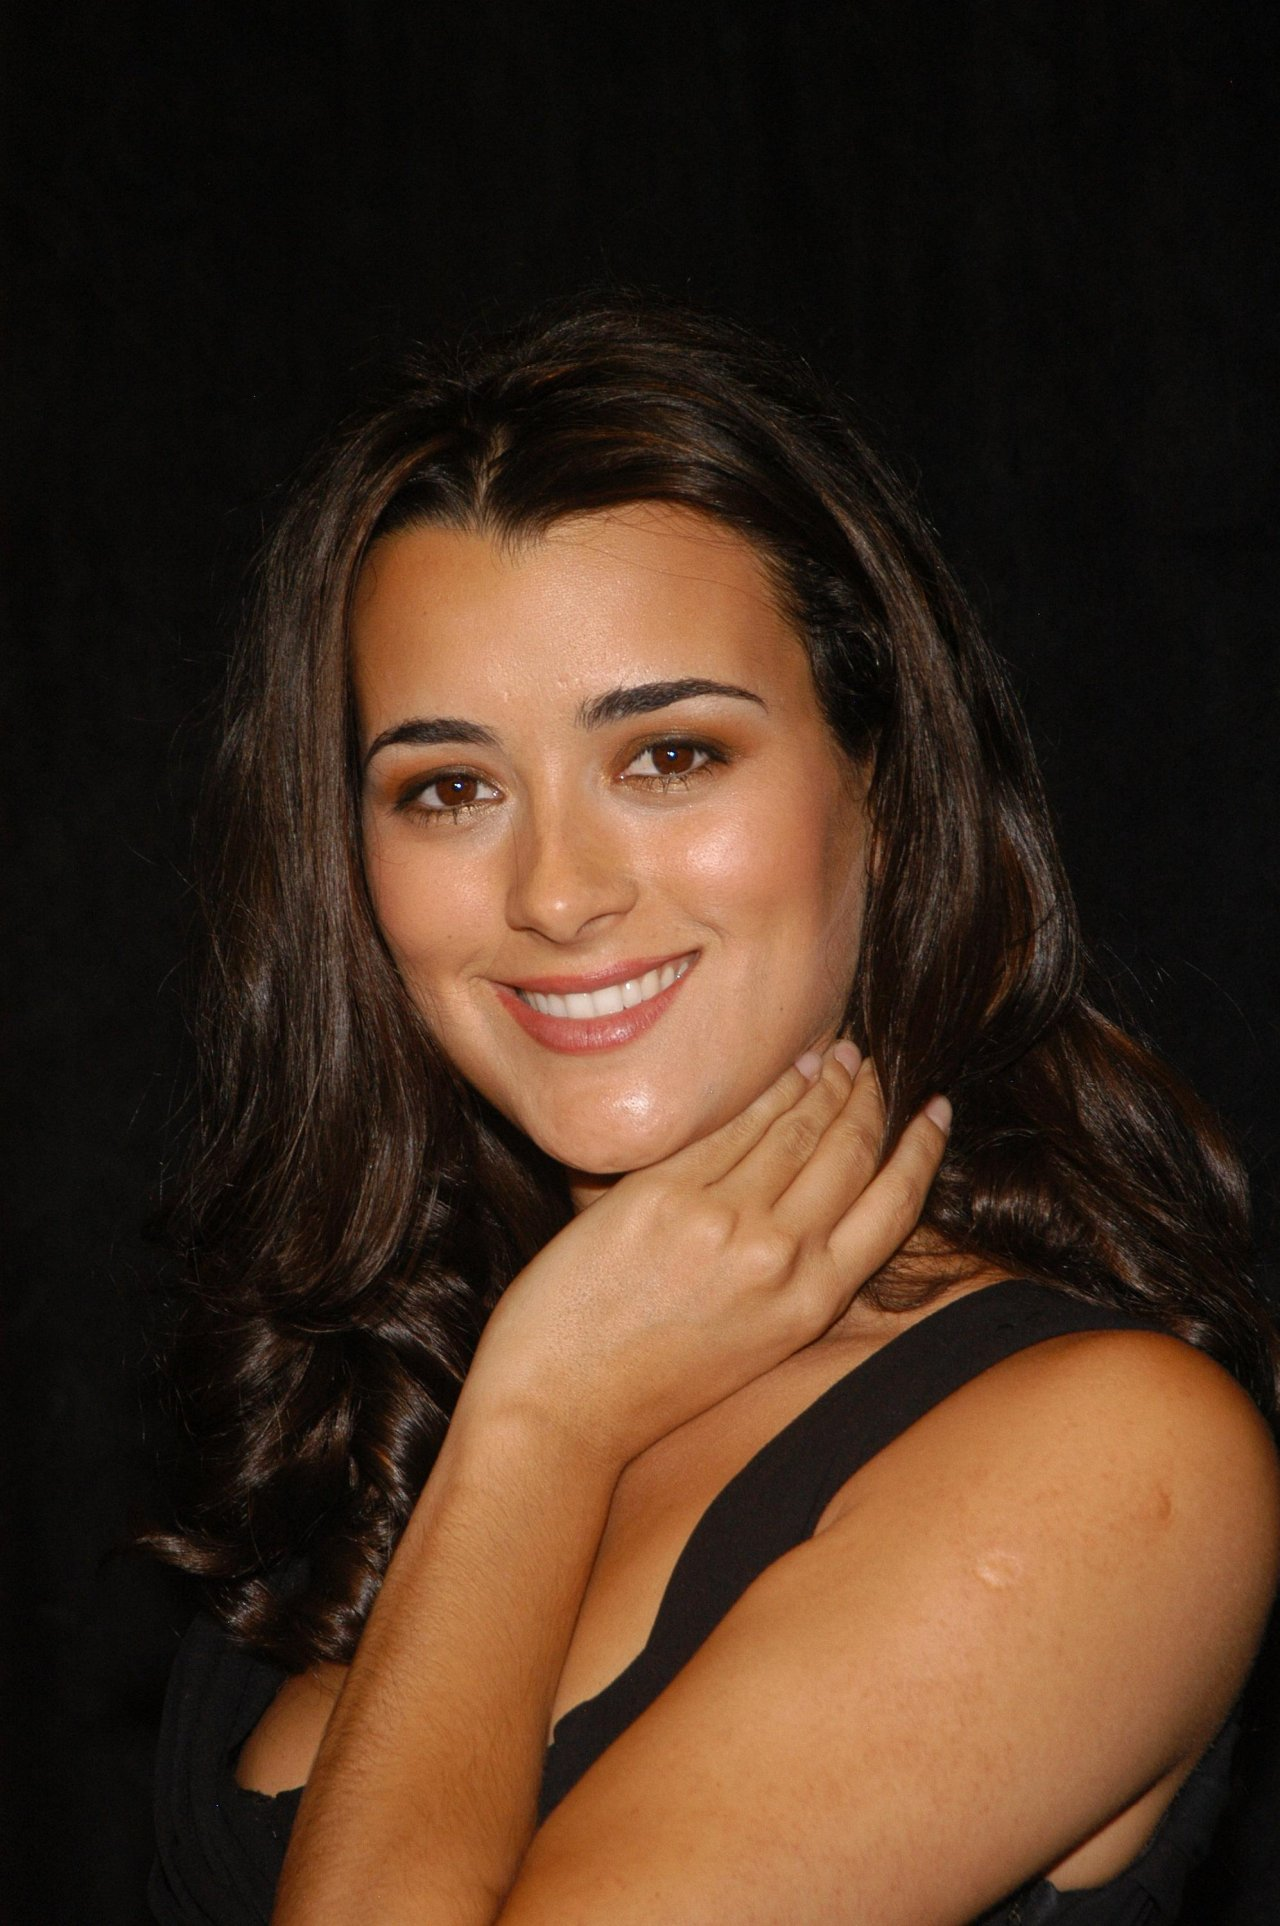 Pics photos picture of cote de pablo